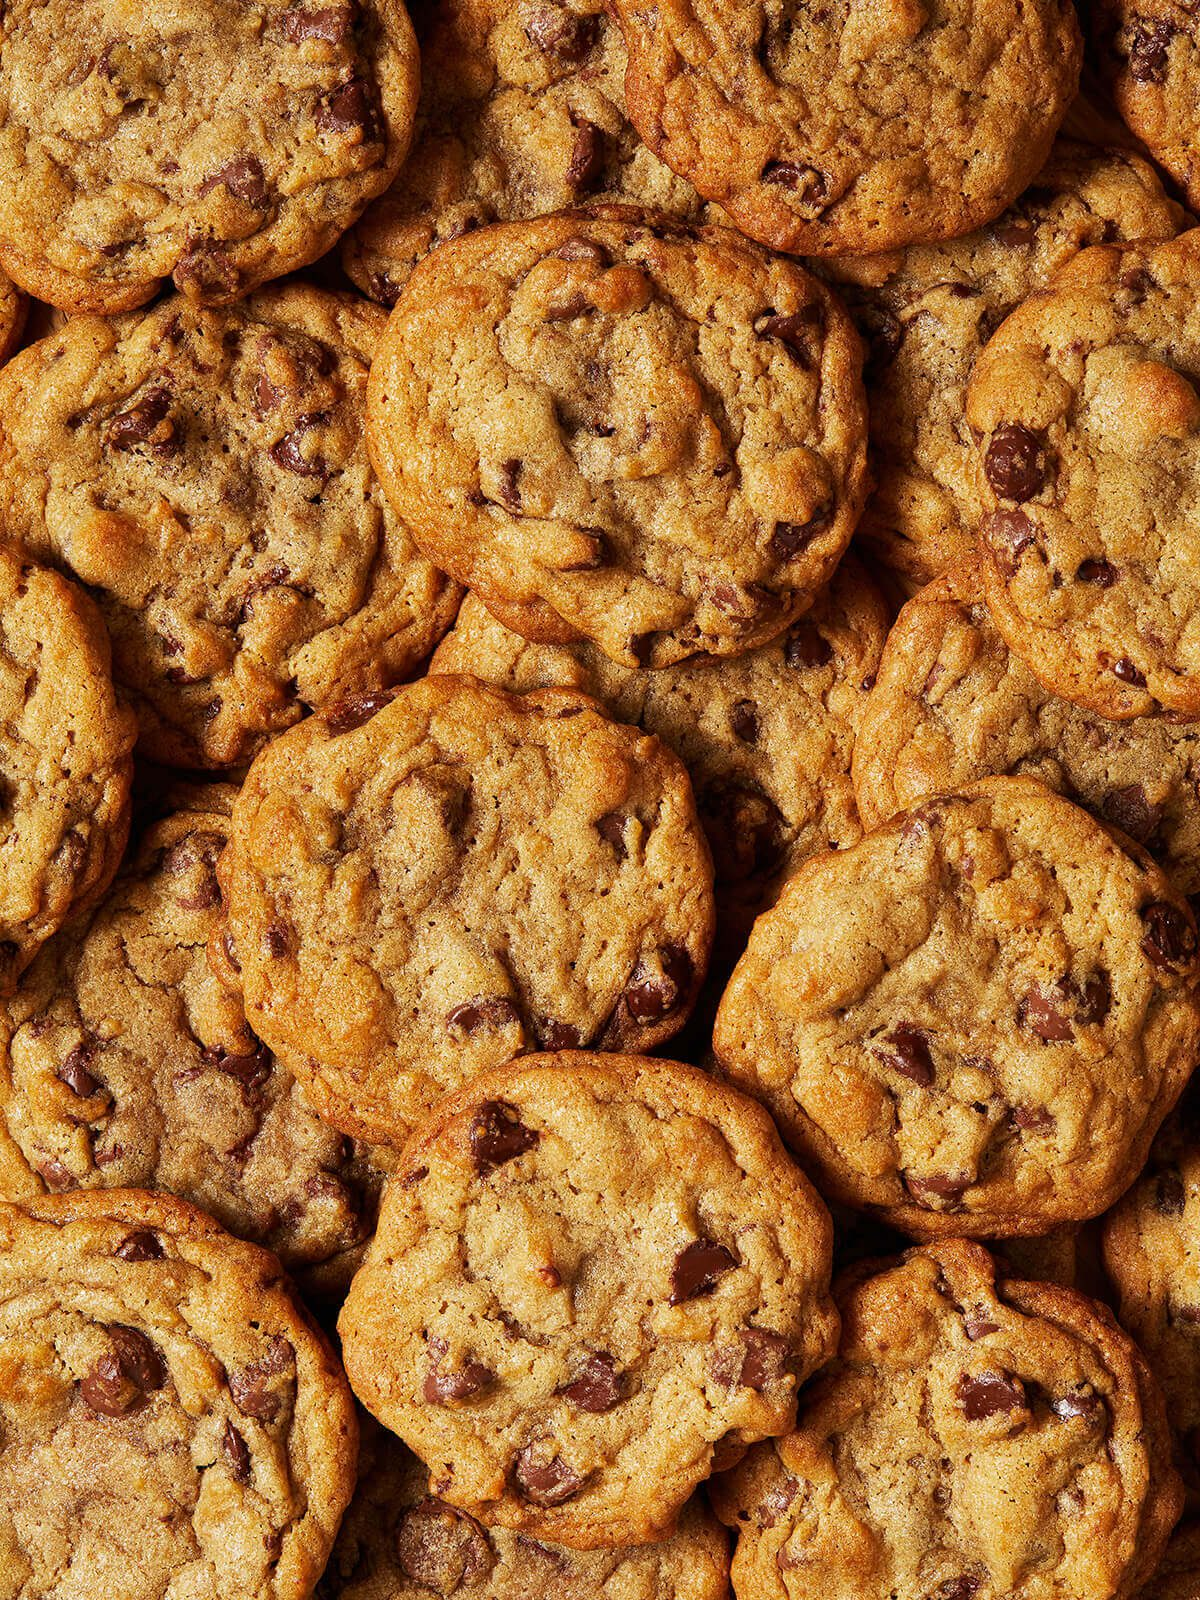 overlapping chocolate chip cookies